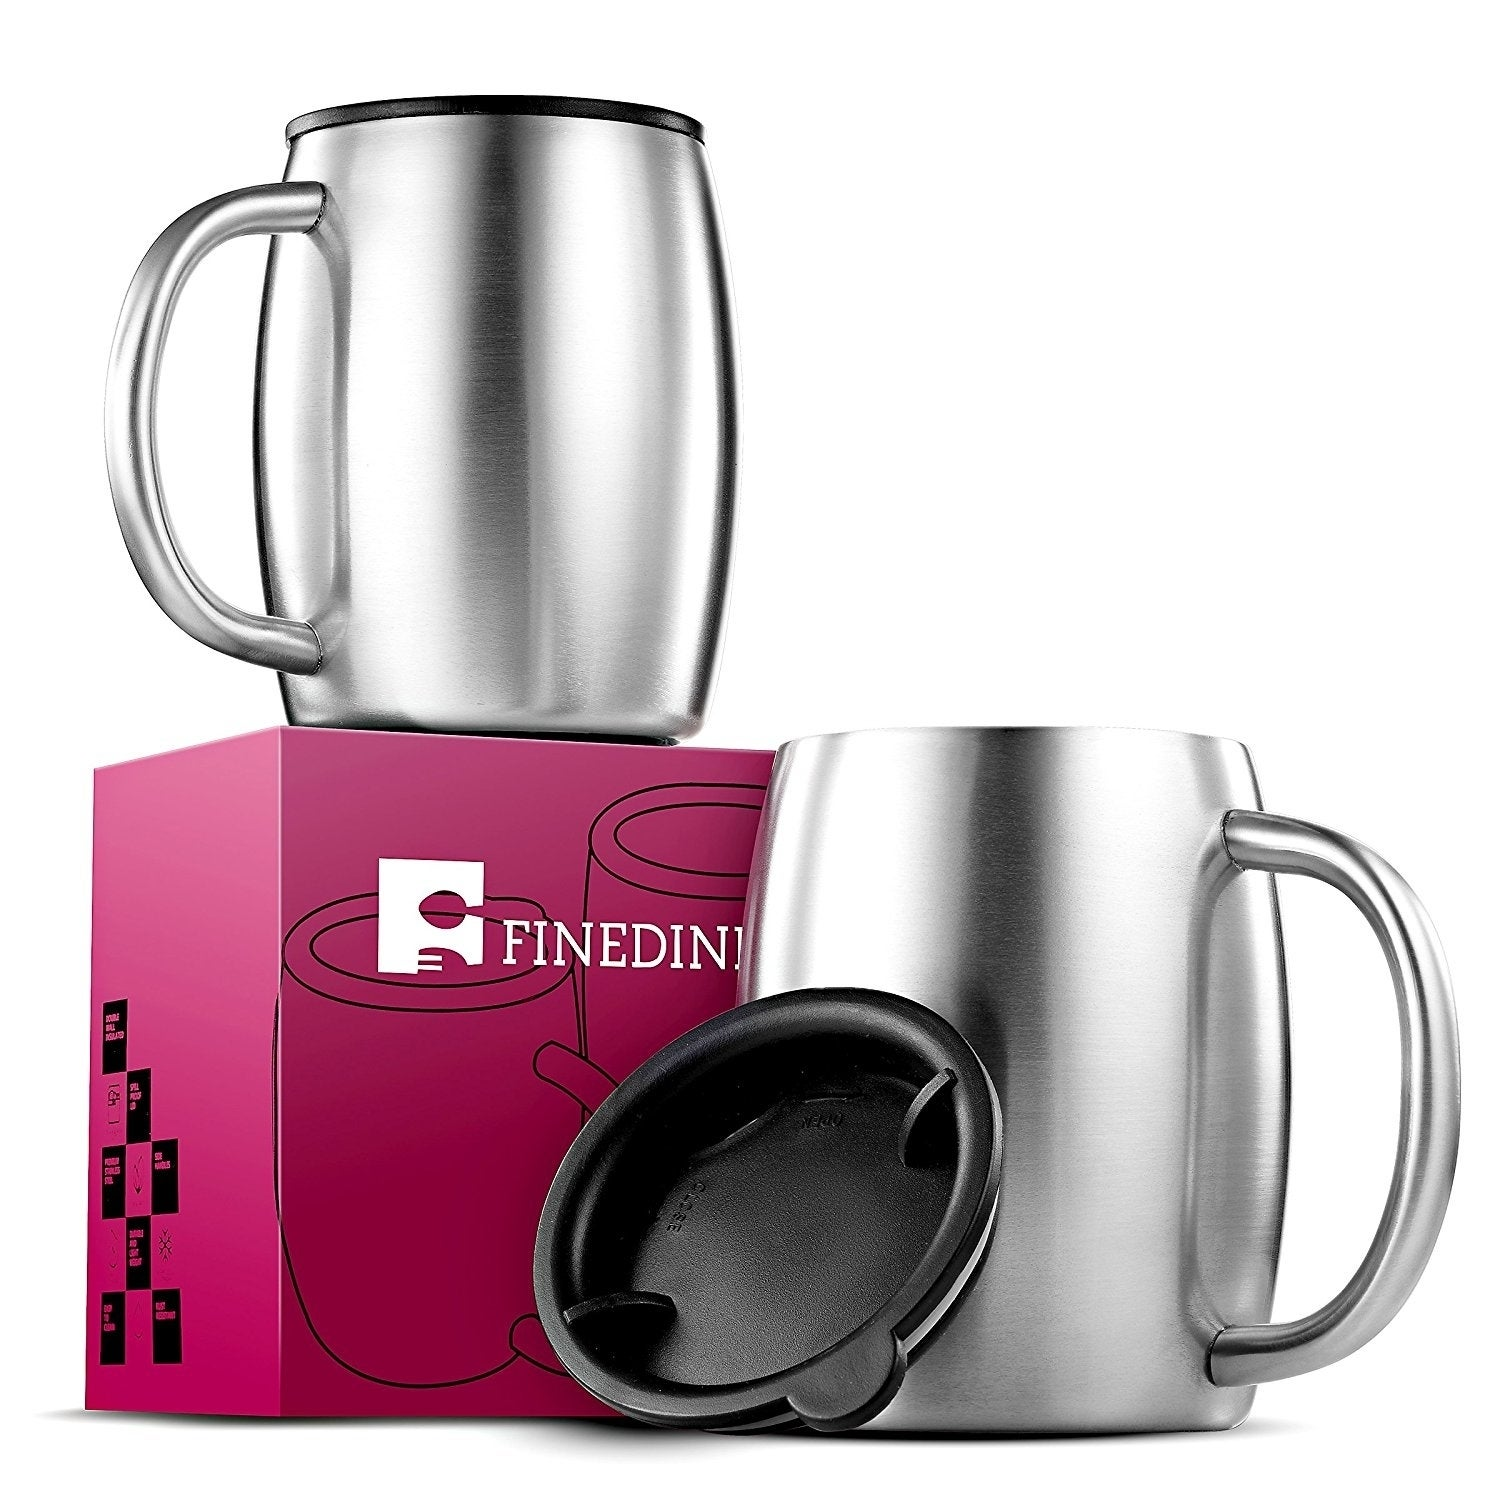 Double Wall Stainless Steel Coffee Mugs With Lids And Handle Set Of 2